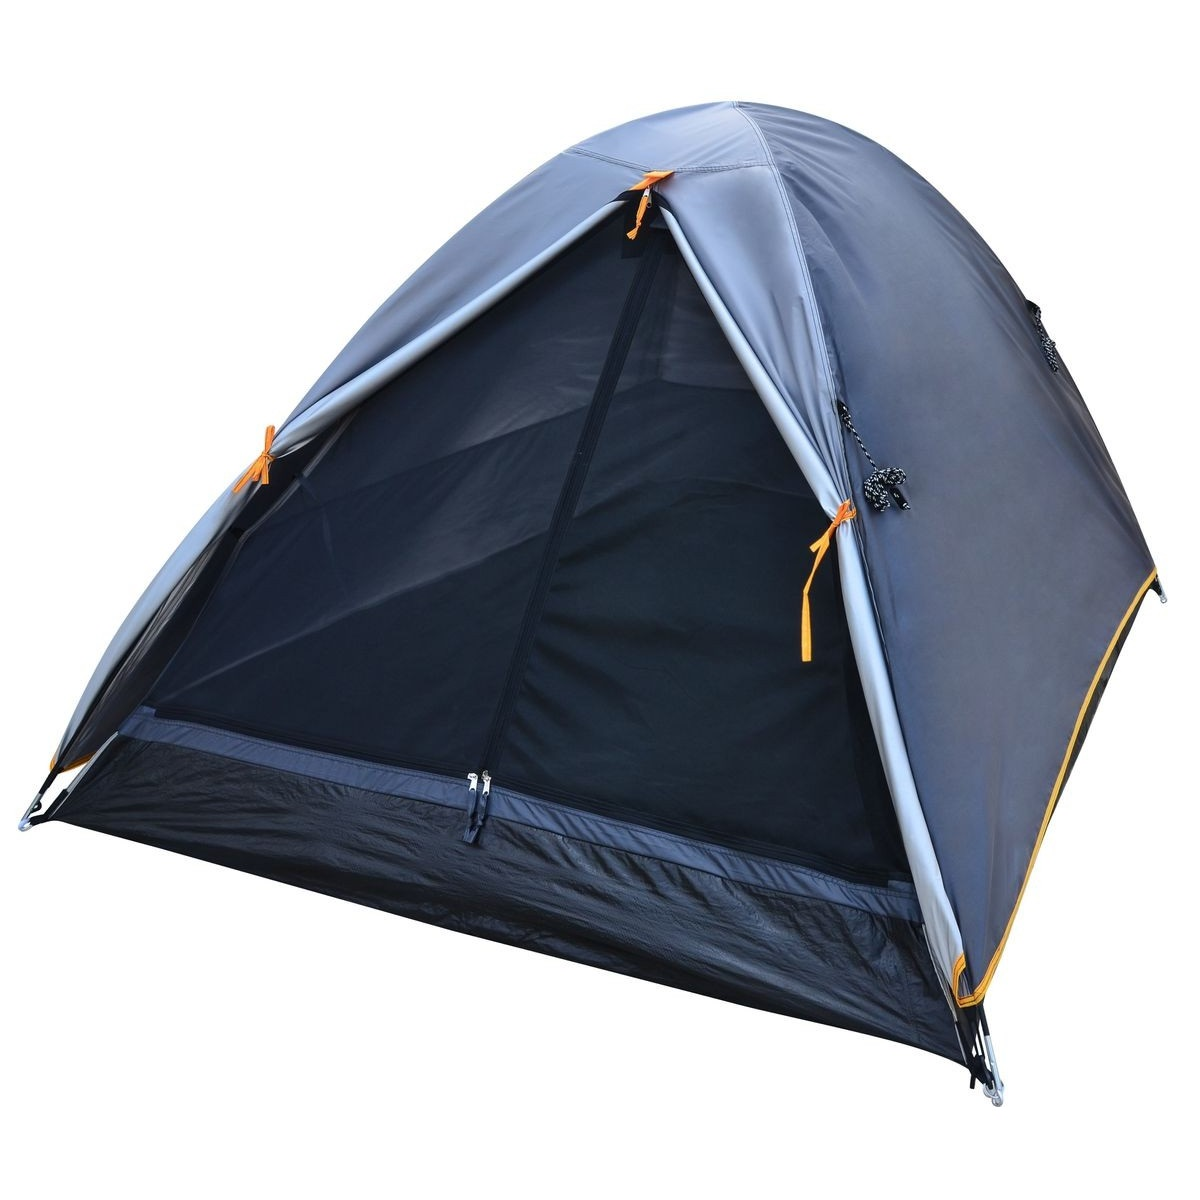 Oztrail Genesis 2p Dome Tent 2 Persons tent  sc 1 st  Budget C&ing & Oztrail Genesis 2p Dome Tent 2 Persons tent u2013 Budget Camping